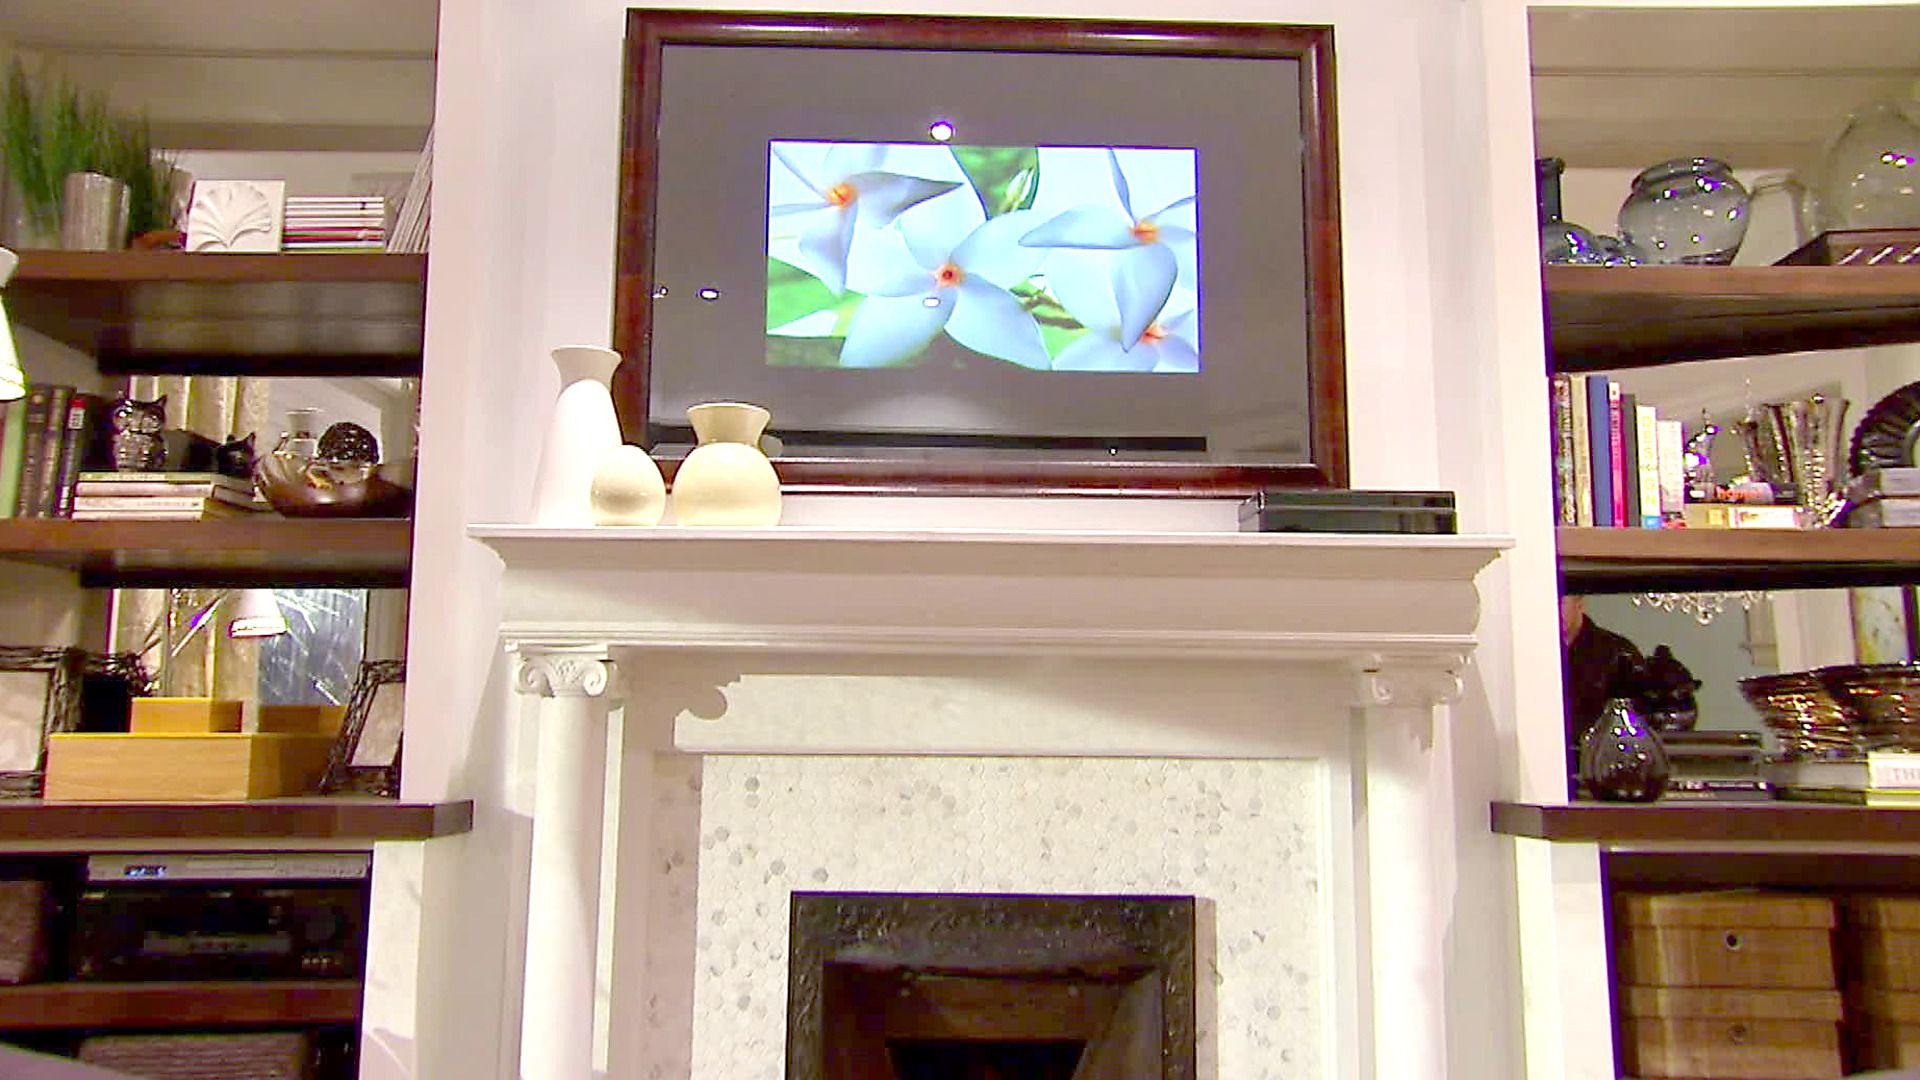 Fireplace Design | Interior Design Styles and Color Schemes for Home ...